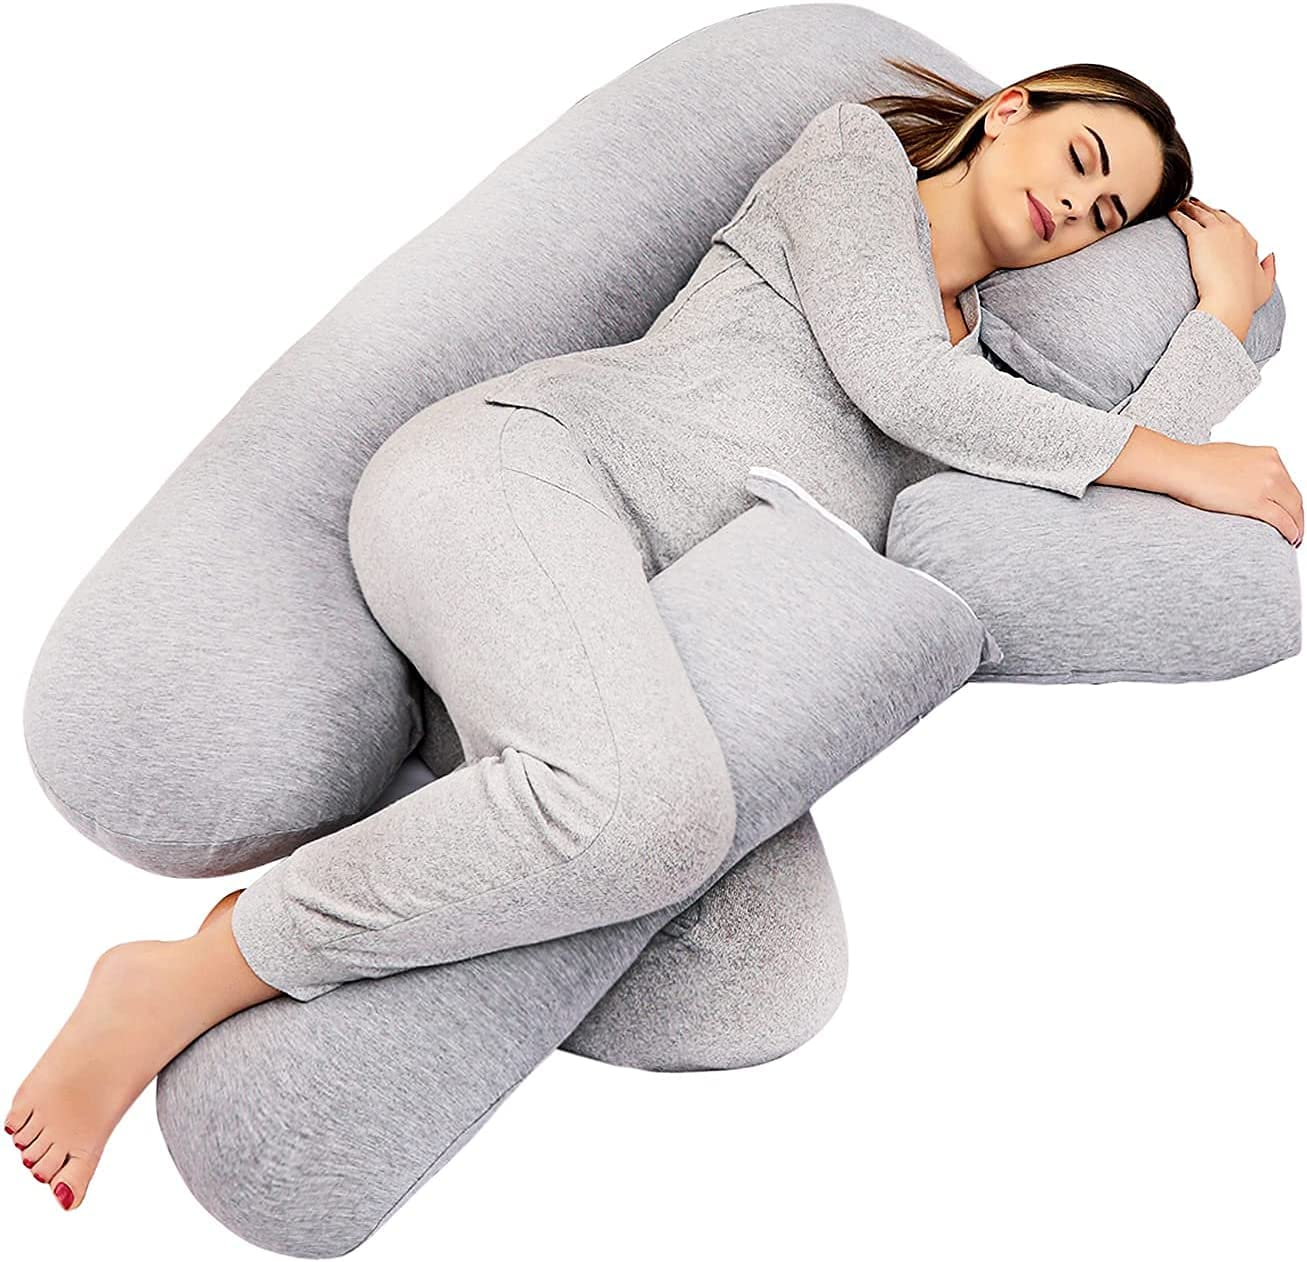 TELER Pregnancy Pillows,Pregnancy Pillow U-Shaped Full Body ,Pregnancy Gifts Maternity Pillow Support Detachable Extension 2-in-1 55 inch Pregnancy Body Pillow